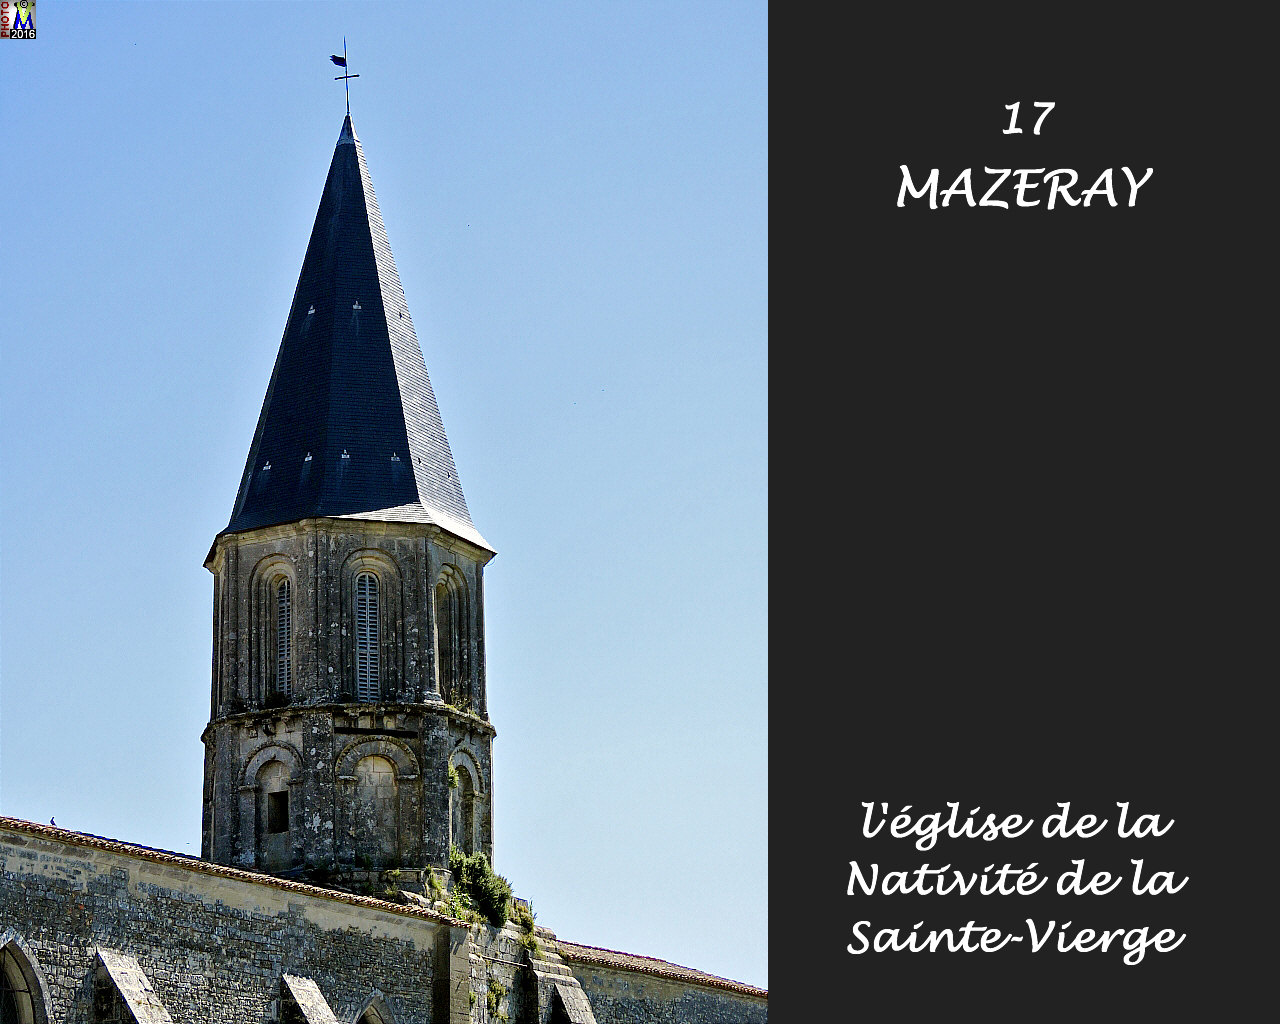 17MAZERAY_eglise_1010.jpg